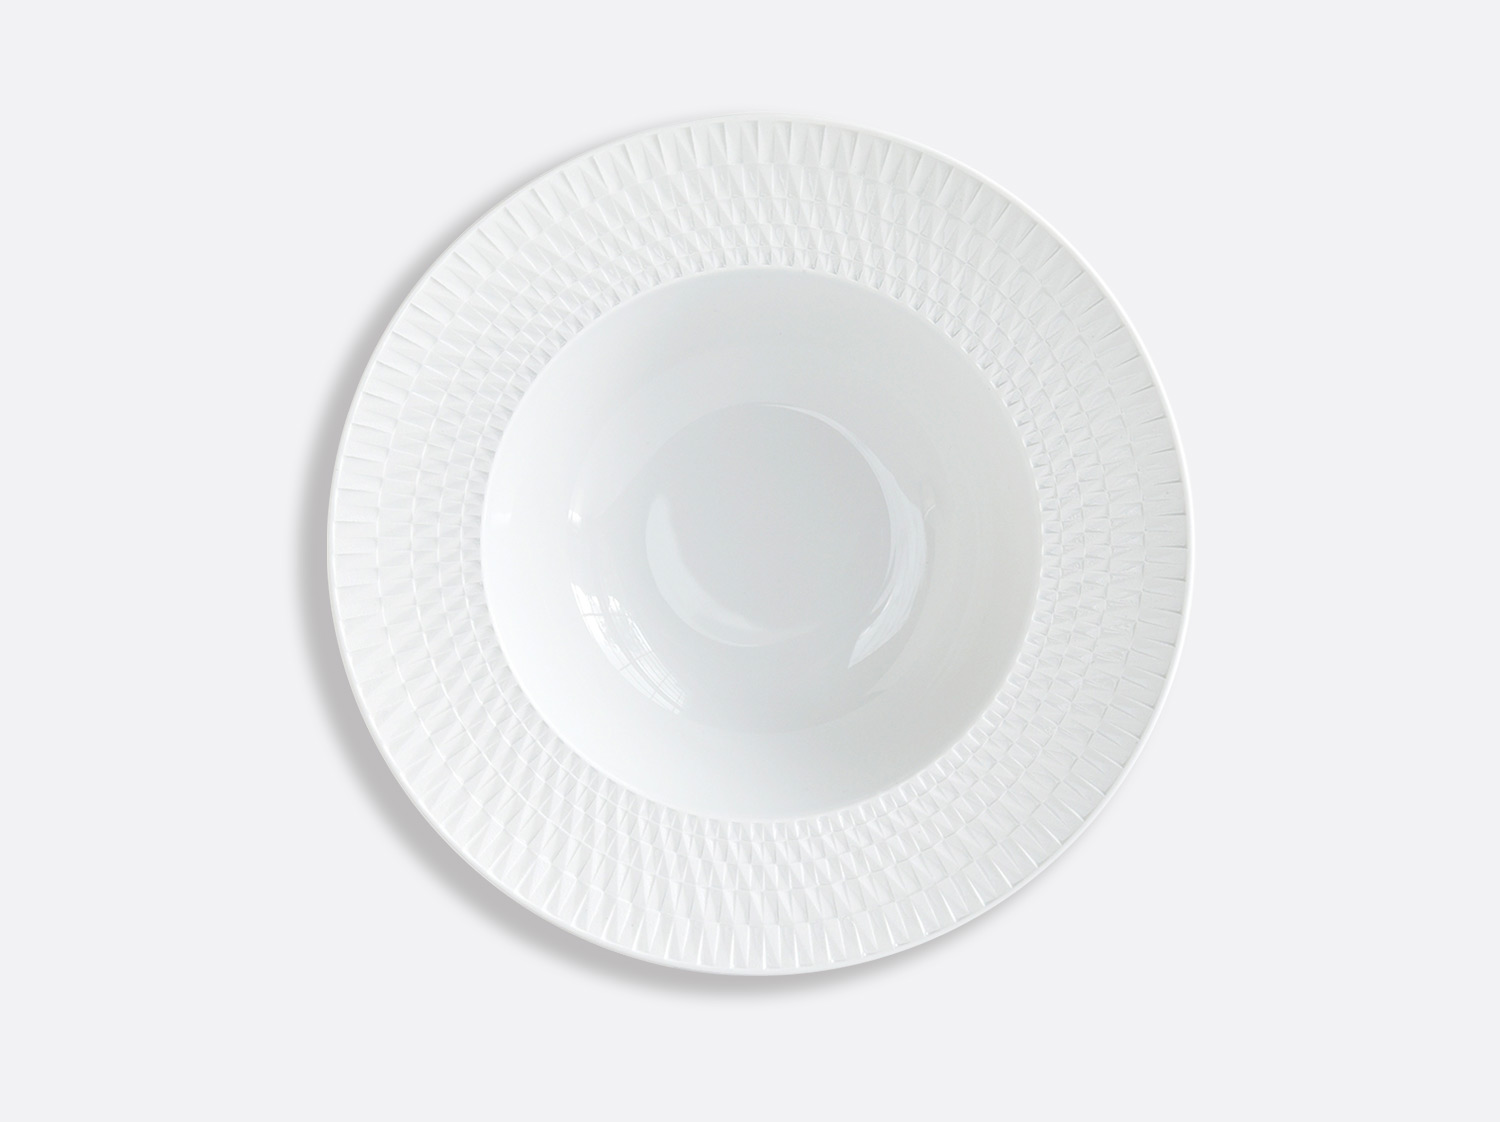 Assiette creuse à aile 22,5 cm en porcelaine de la collection Twist Bernardaud